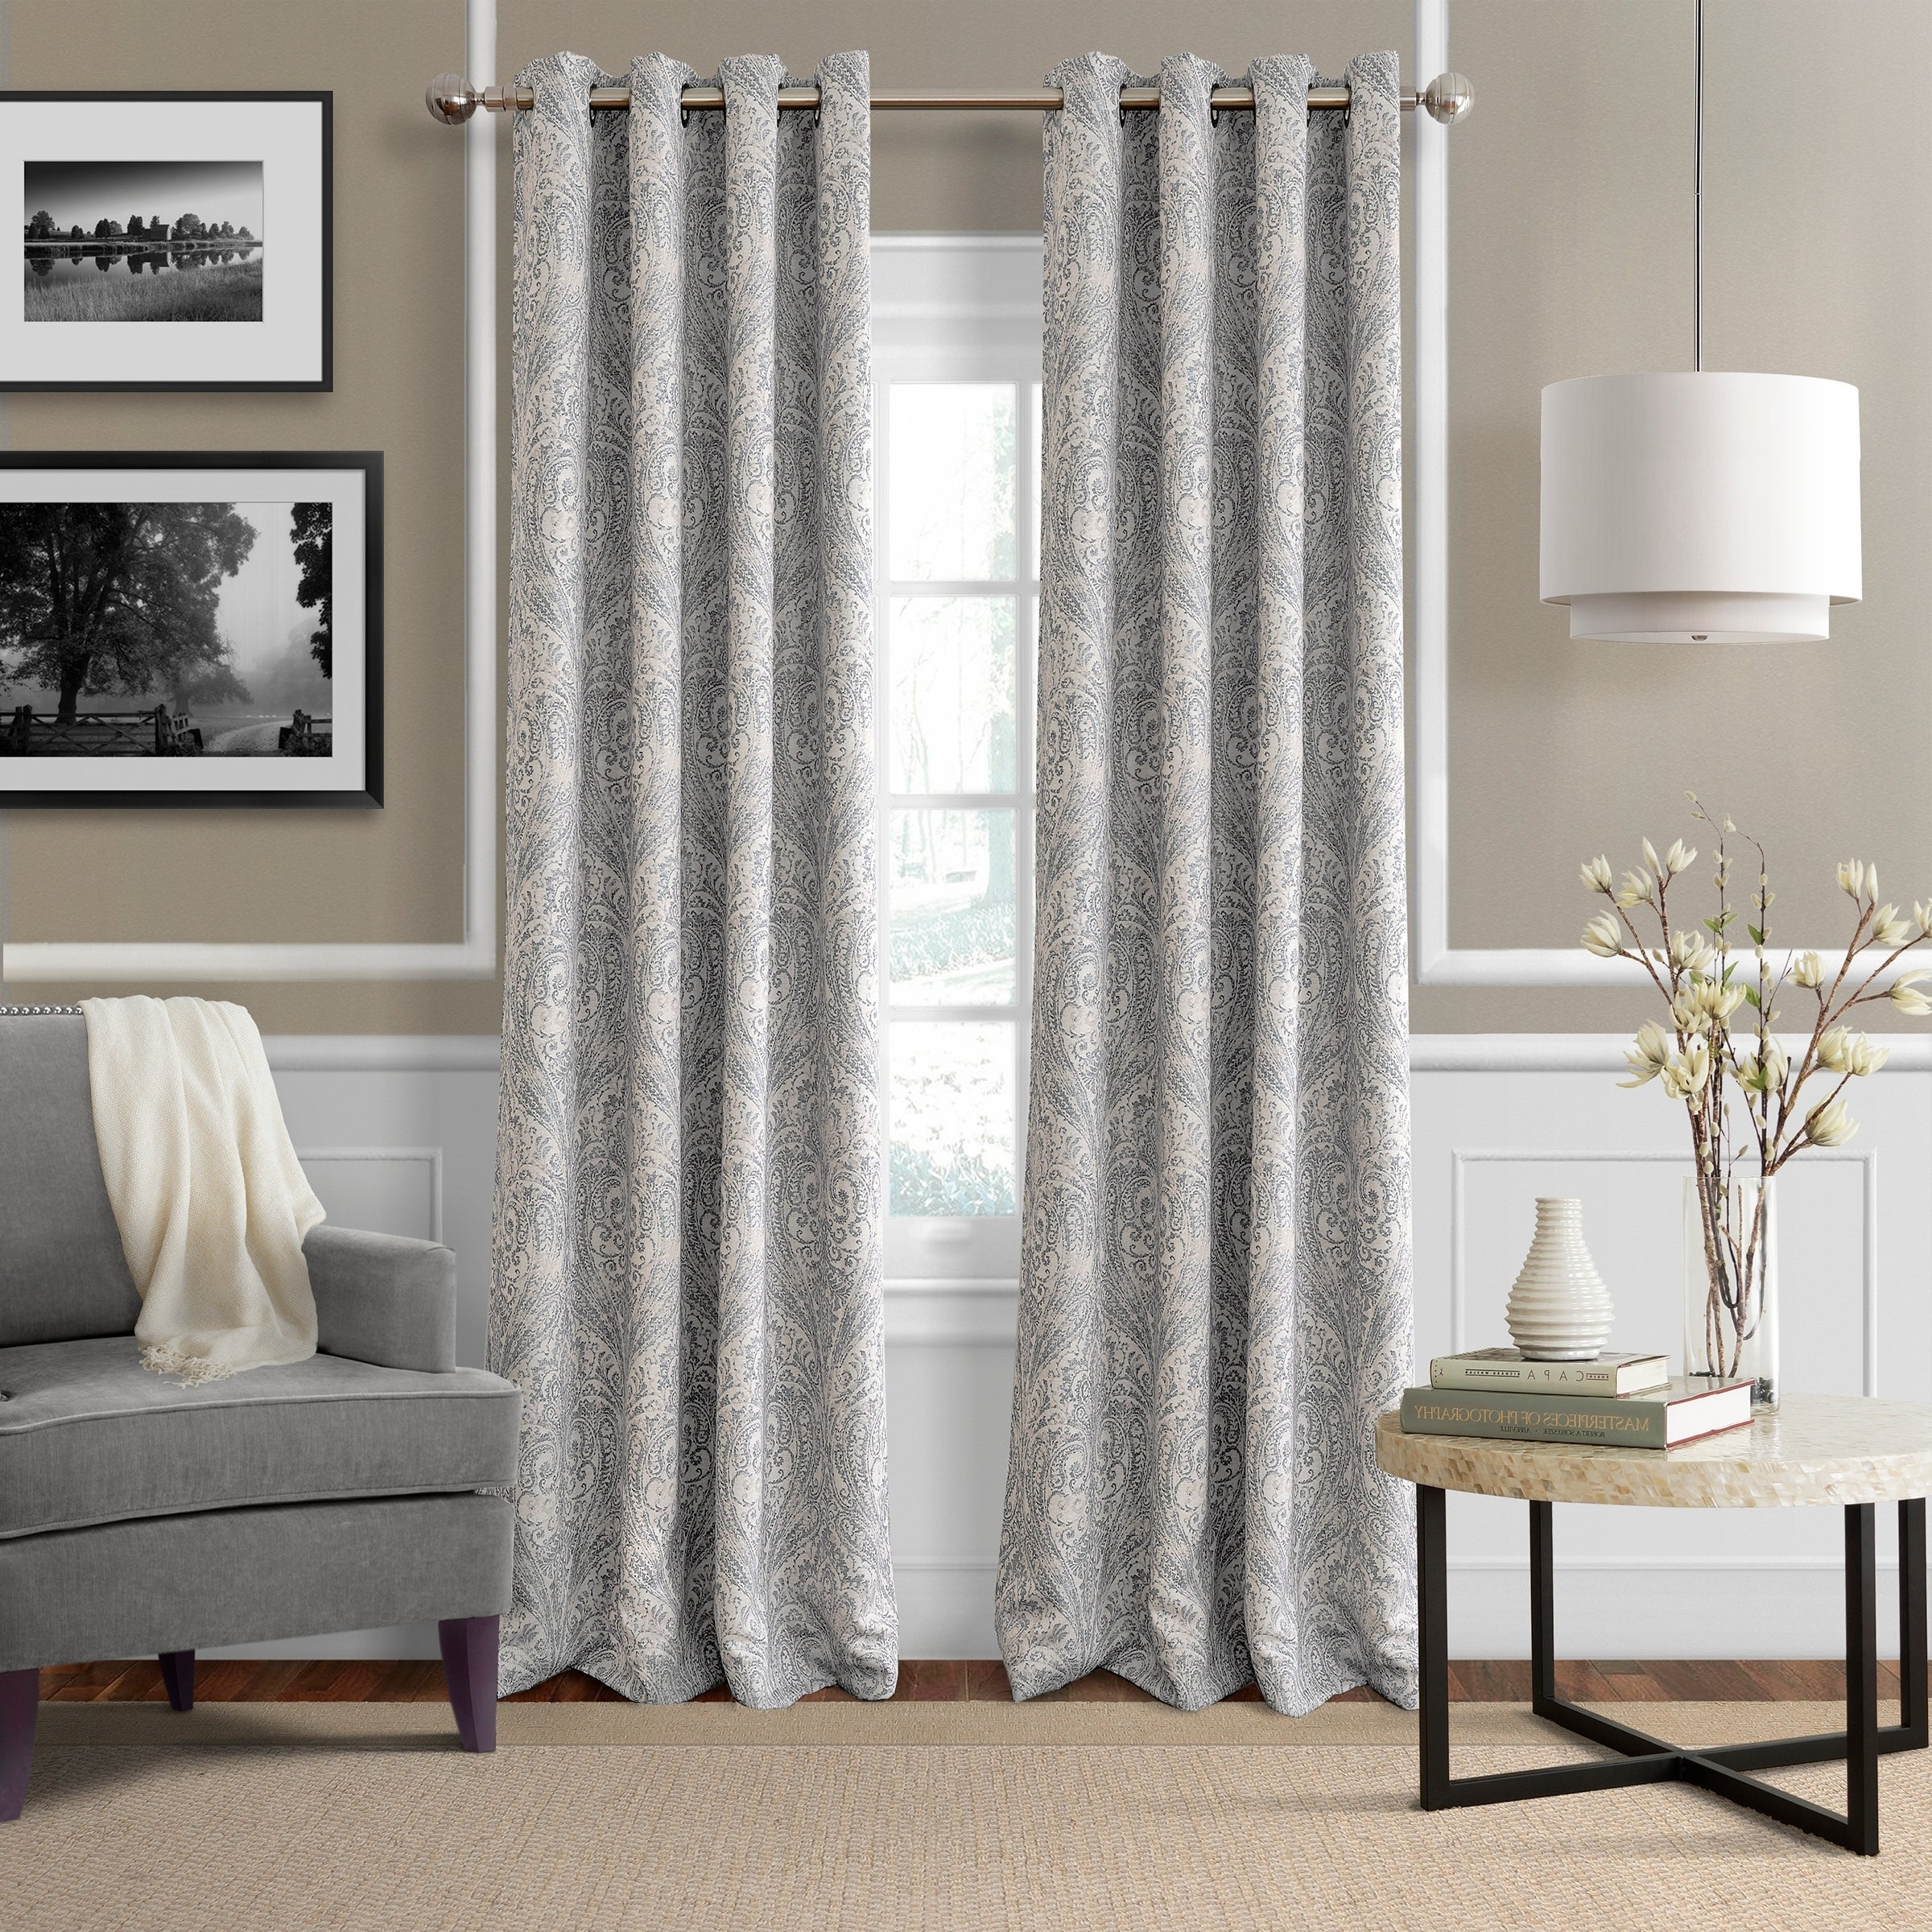 Well Liked Porch & Den Lorentz Silver 24 Inch Tier Pairs Within Details About Porch & Den Patrick Room Darkening Grommet Top Curtain Panel (View 13 of 20)